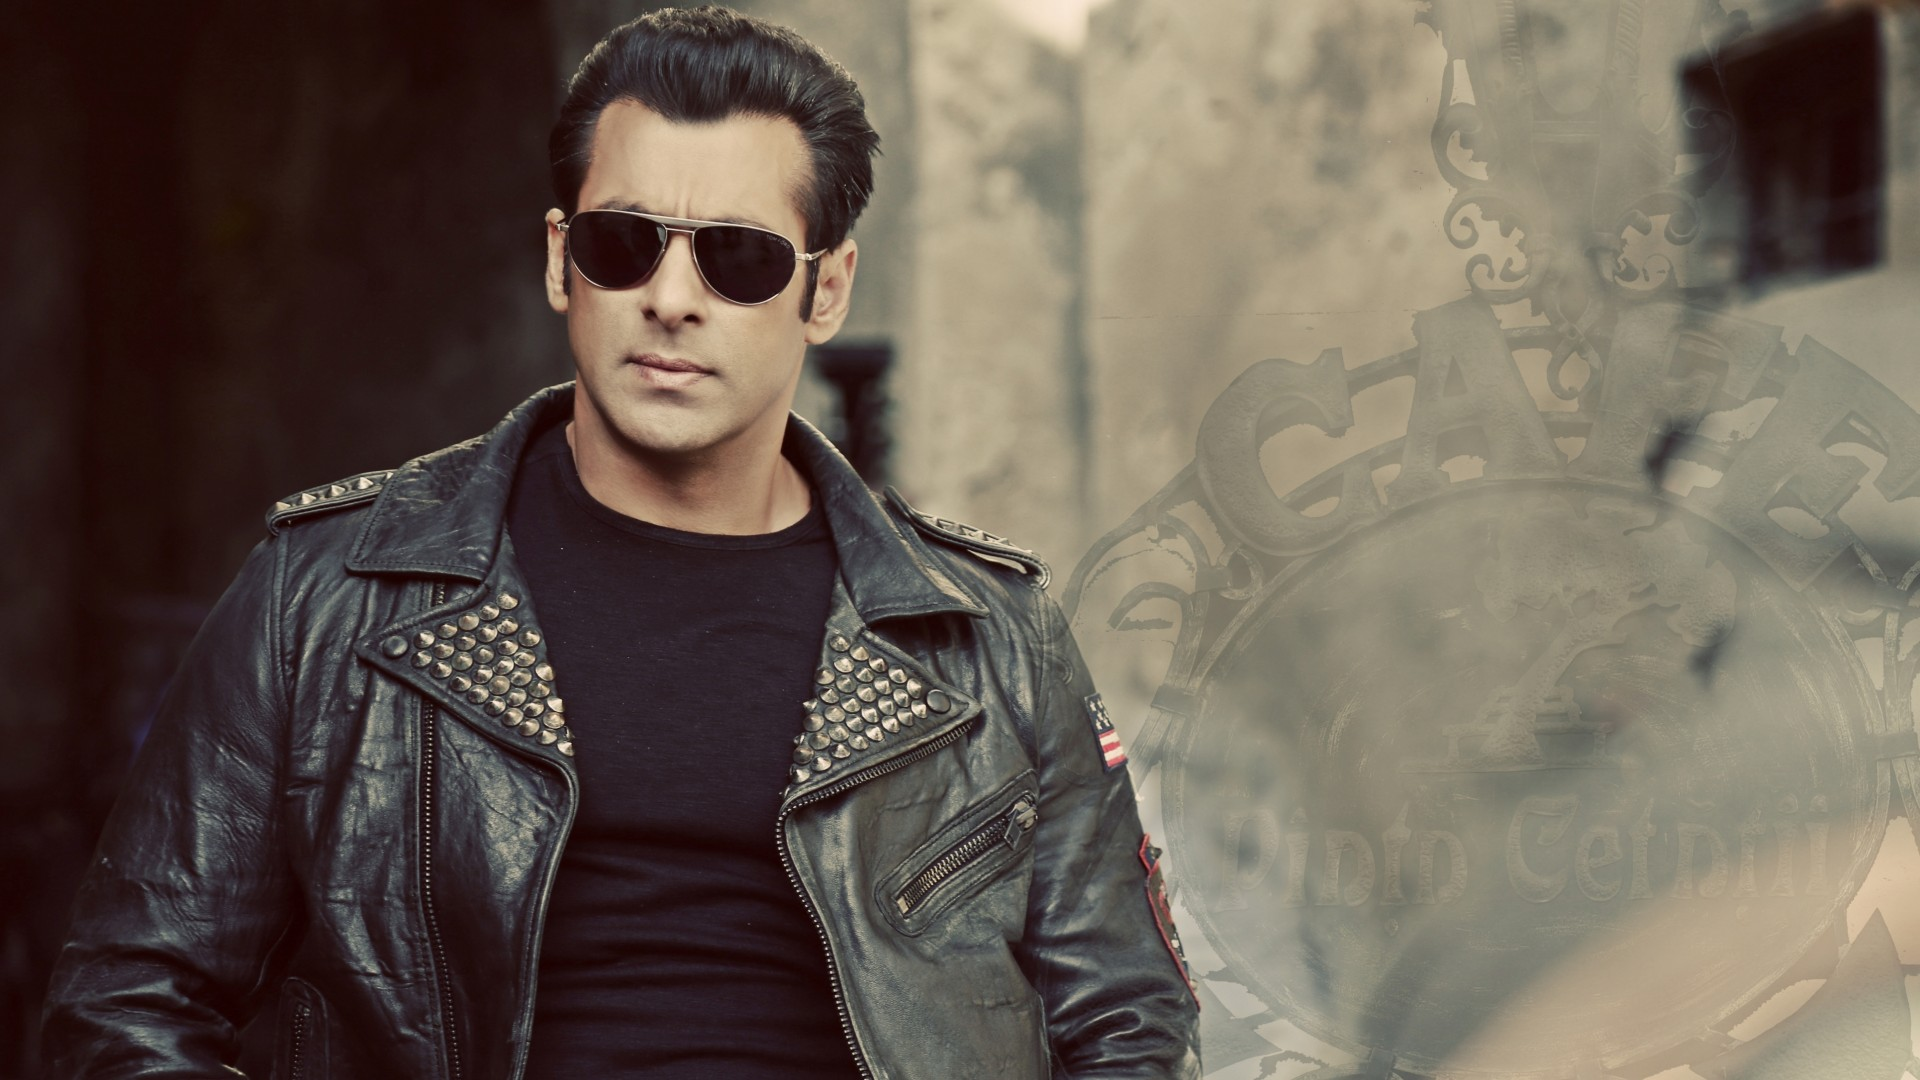 f623e52fcd Salman Khan Wallpapers High Resolution and Quality Download